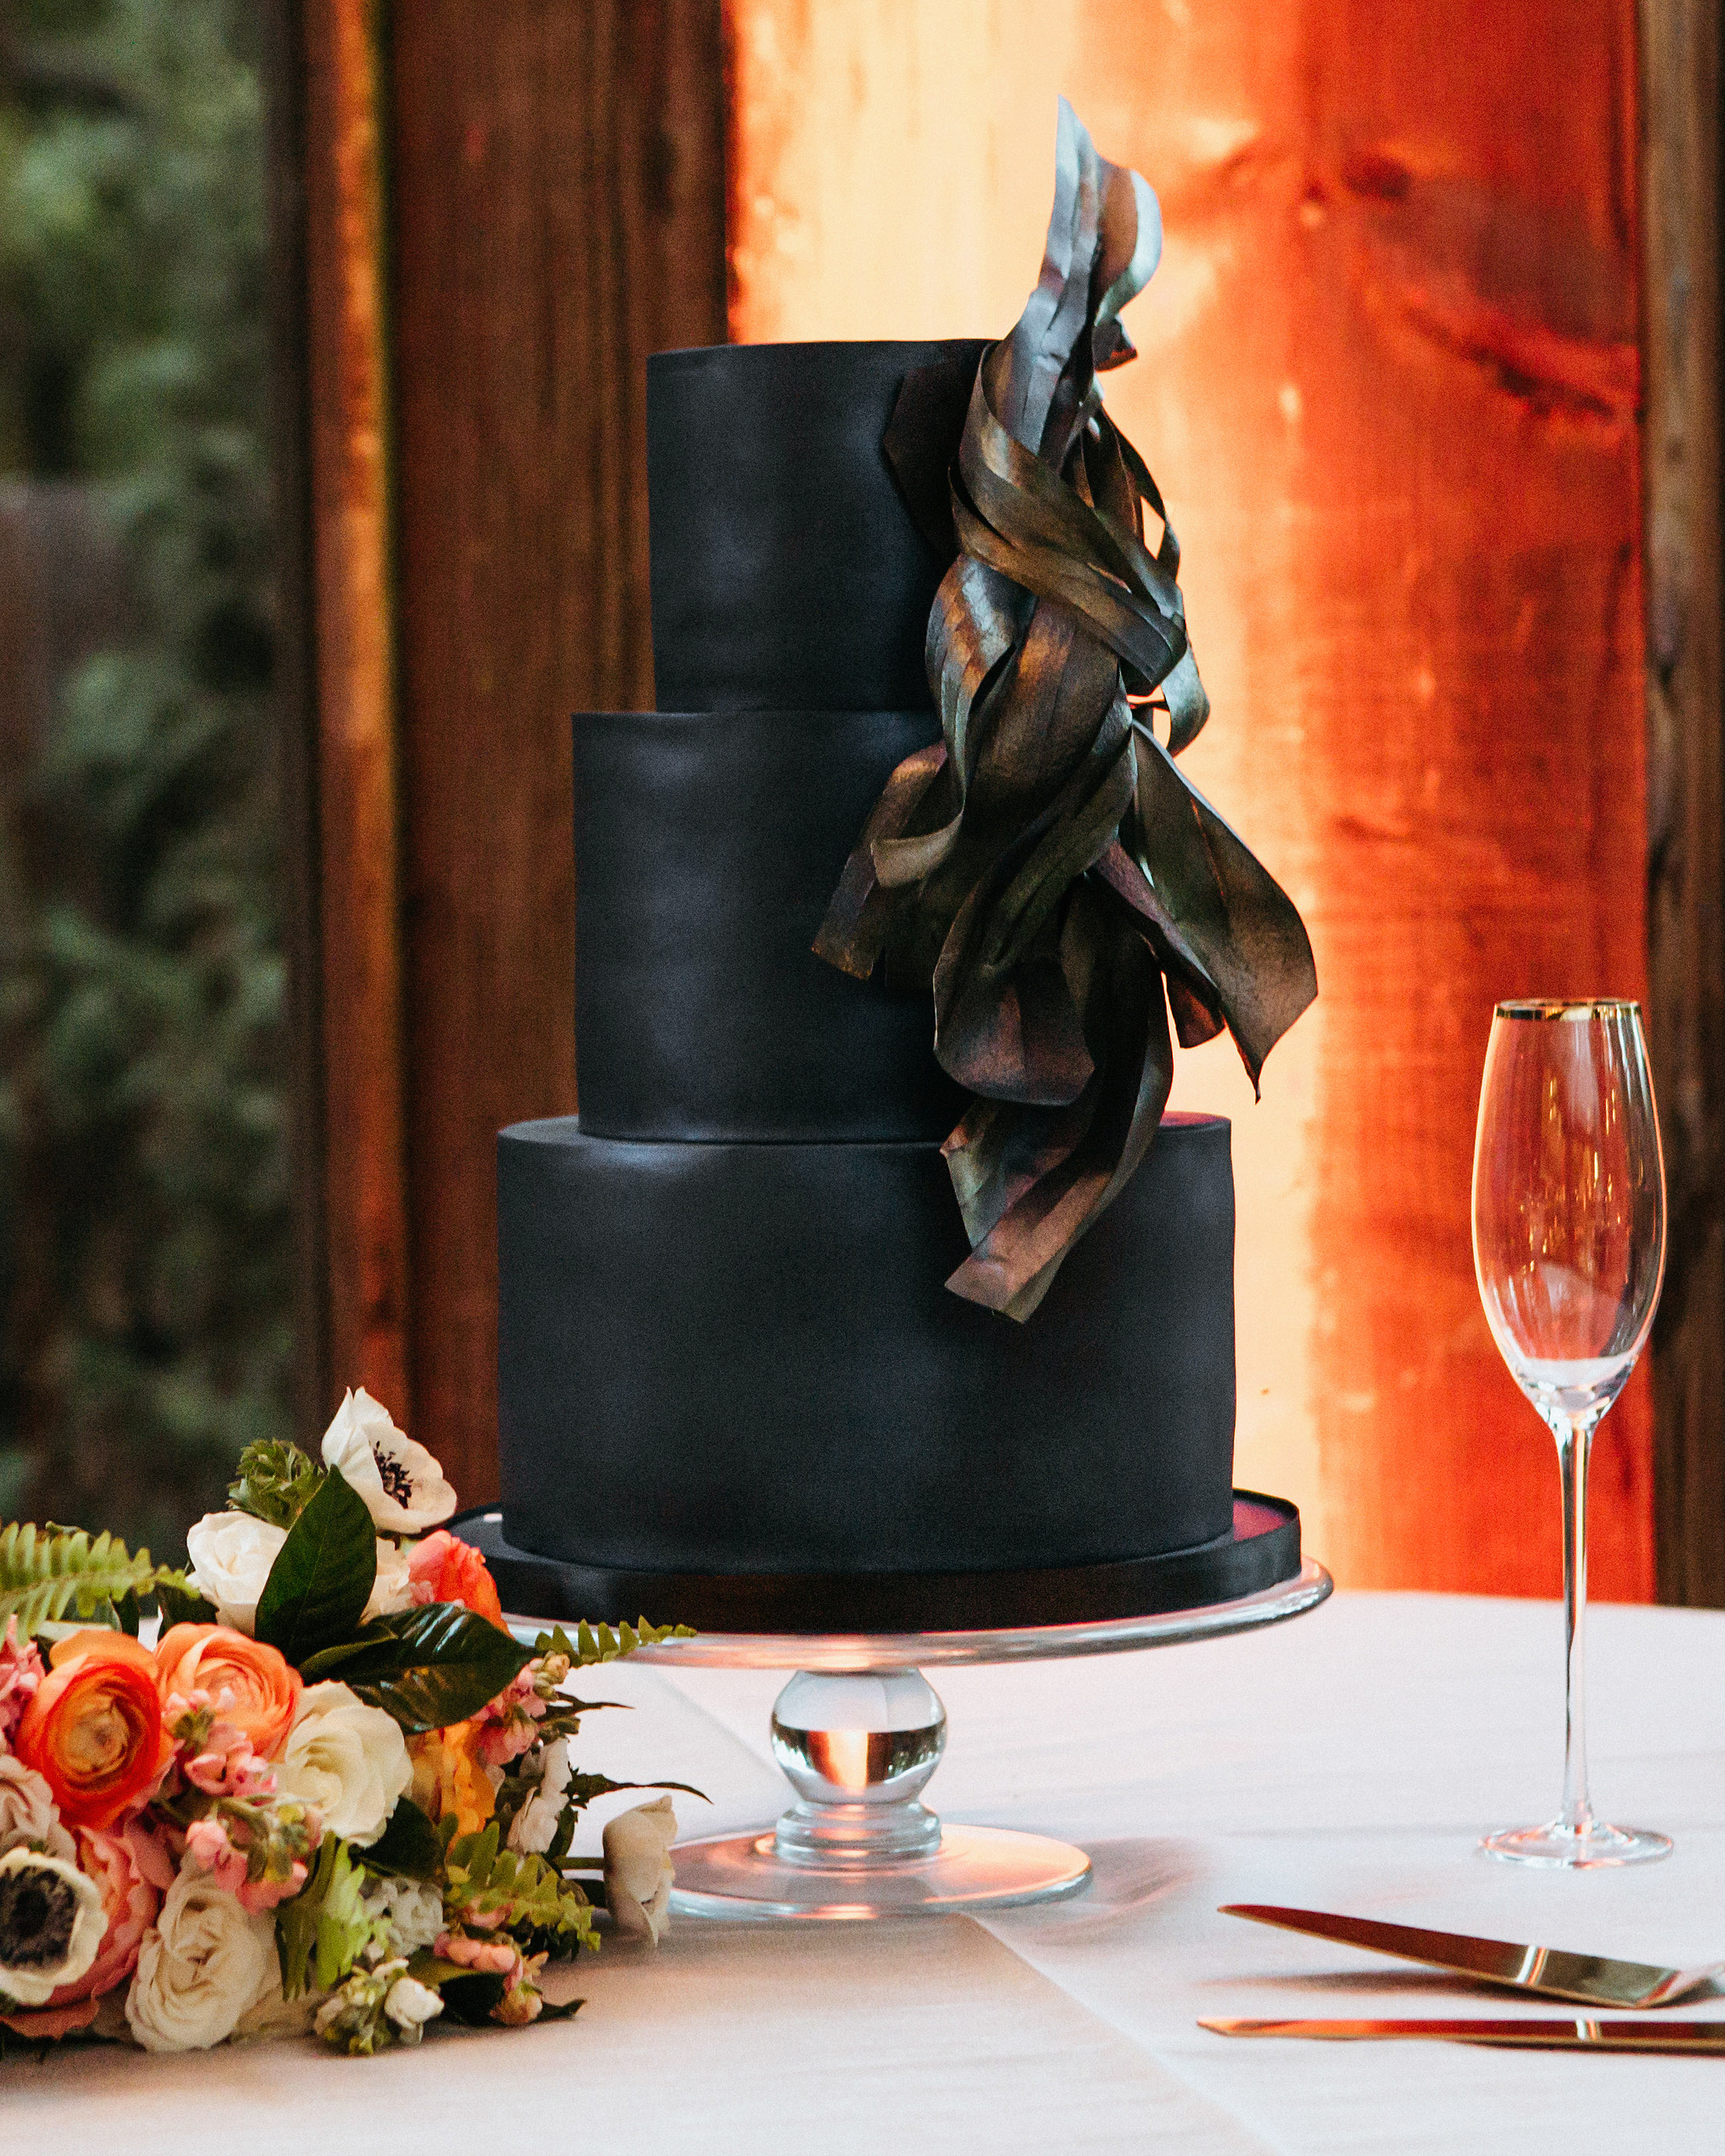 black-wedding-cake-the-gathering-season-bottegalouie-0918